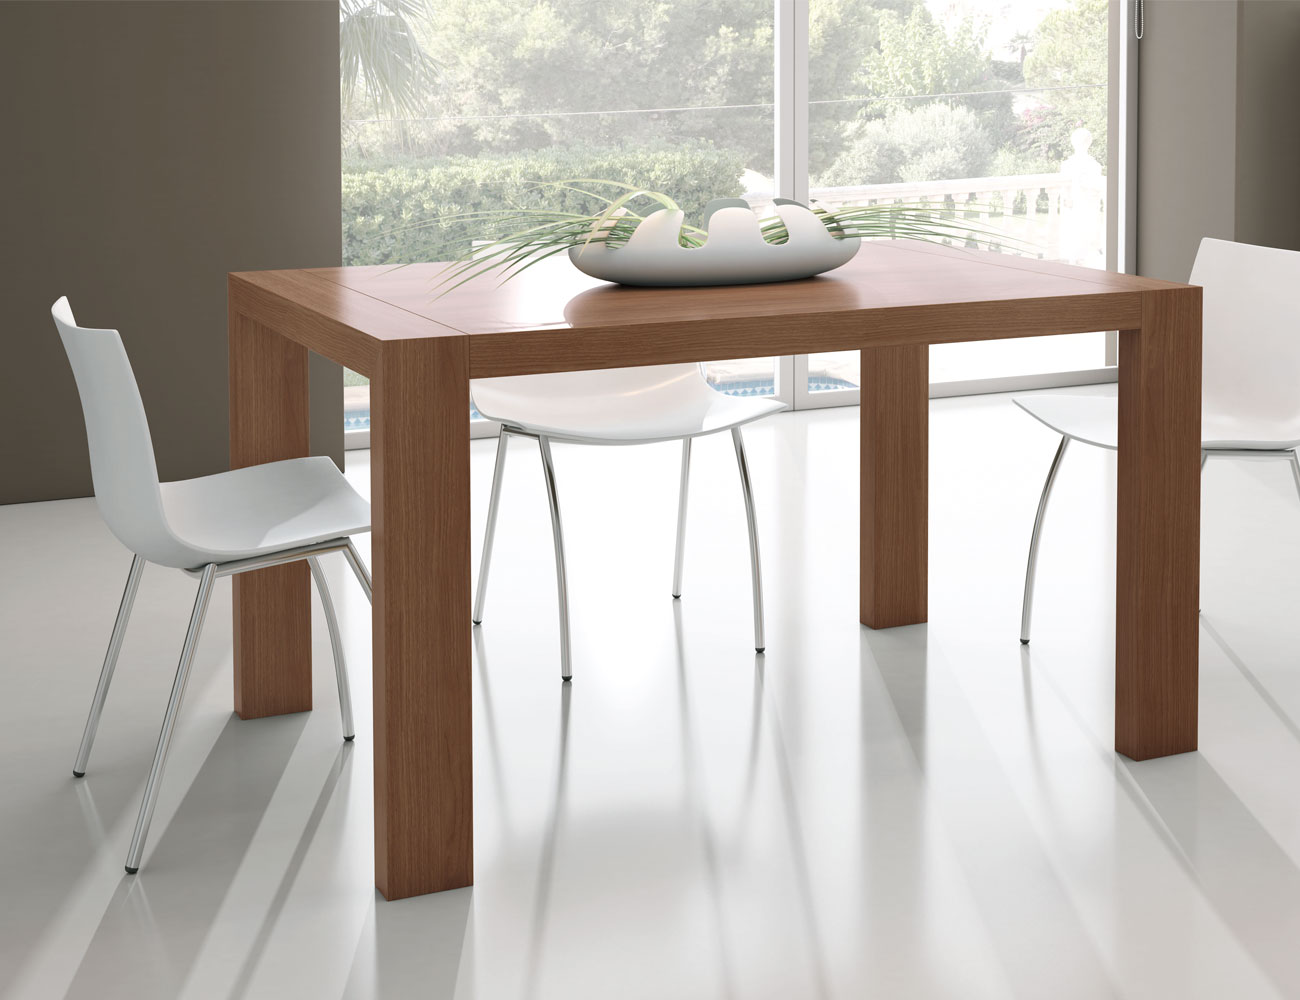 M223 mesa comedor rectangular extensible nogal4